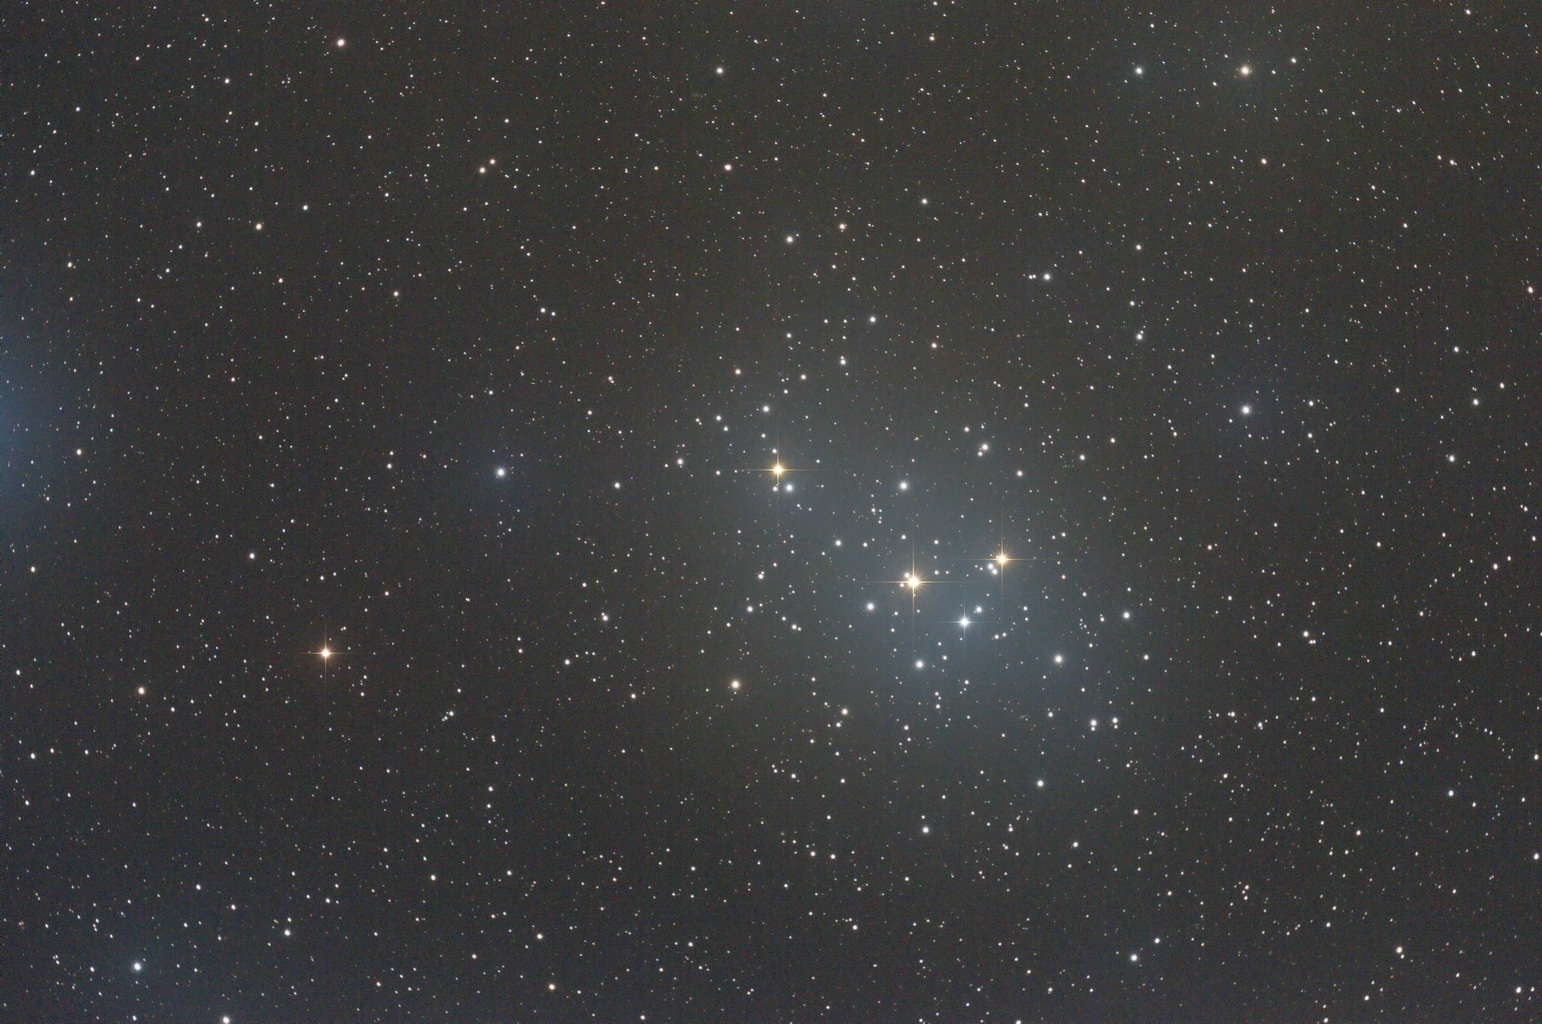 M44-spike-resized.jpg